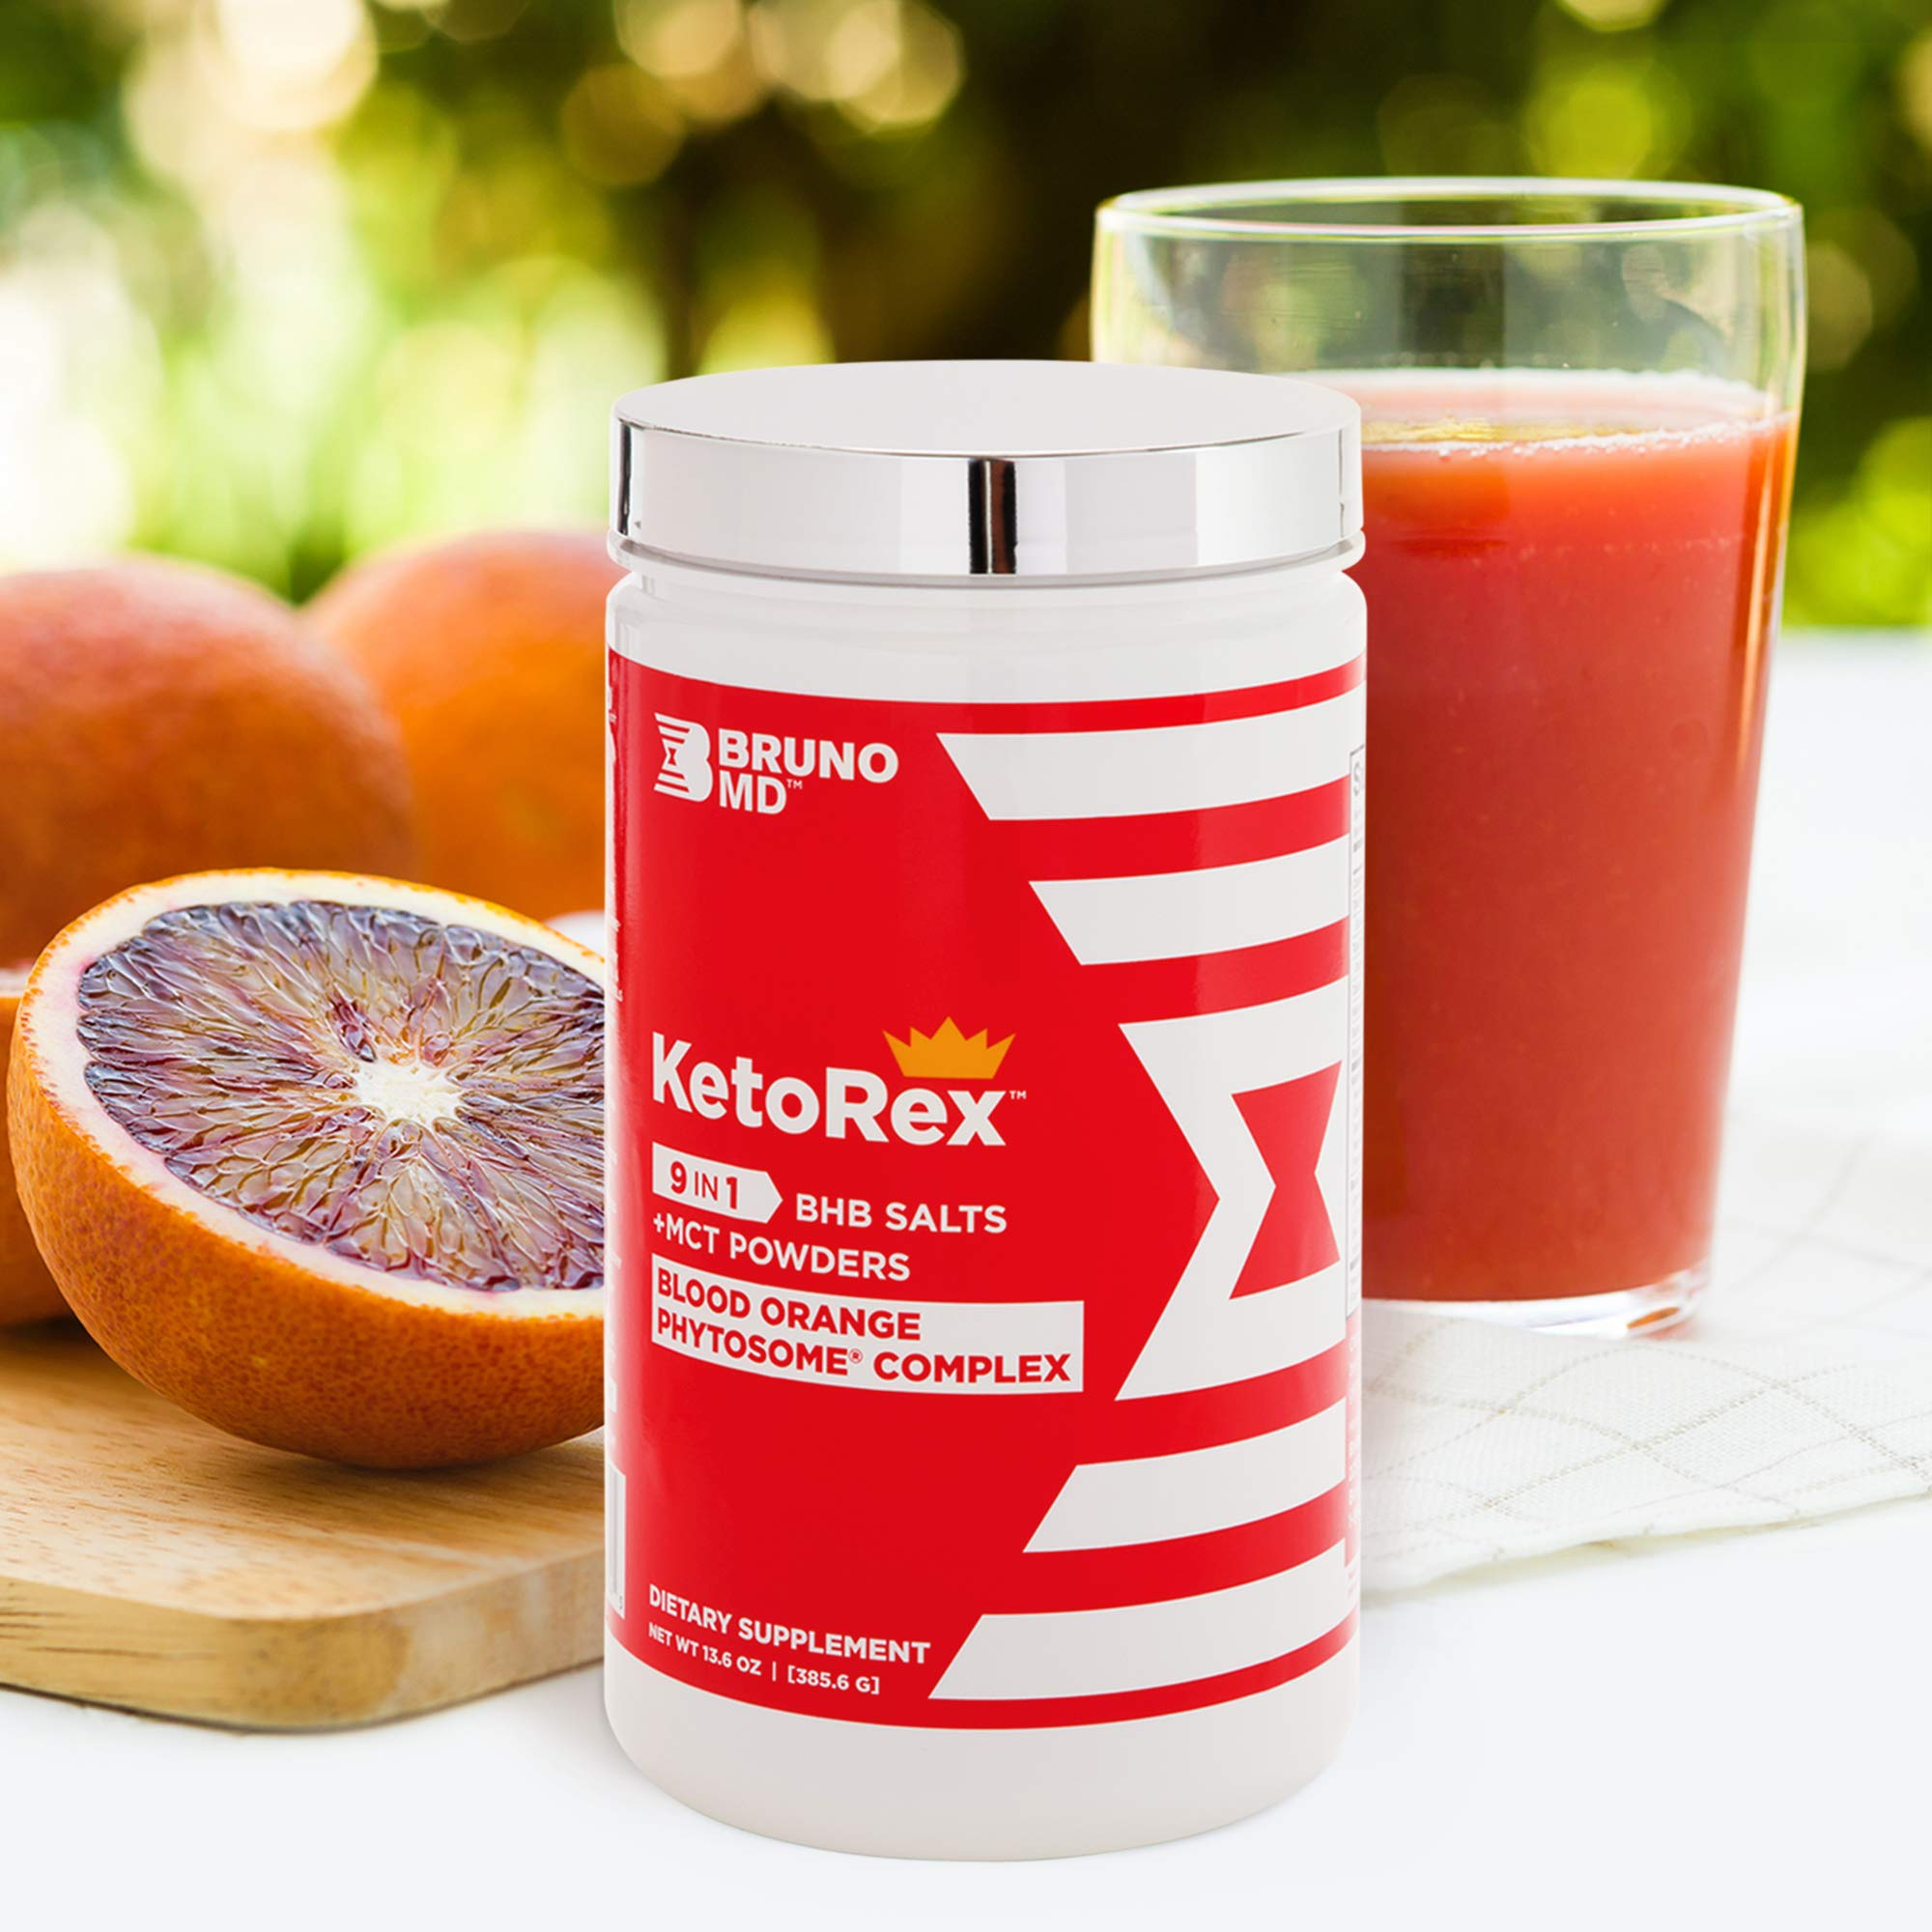 Bruno MD Ketorex Exogenous Ketone BHB Salts + MCT Powder, Clinically-Proven Phytosome Complex - Delicious, Blood Orange Blend for Paleo, Nutritional Therapy Management – Keto Salt Dietary Supplement